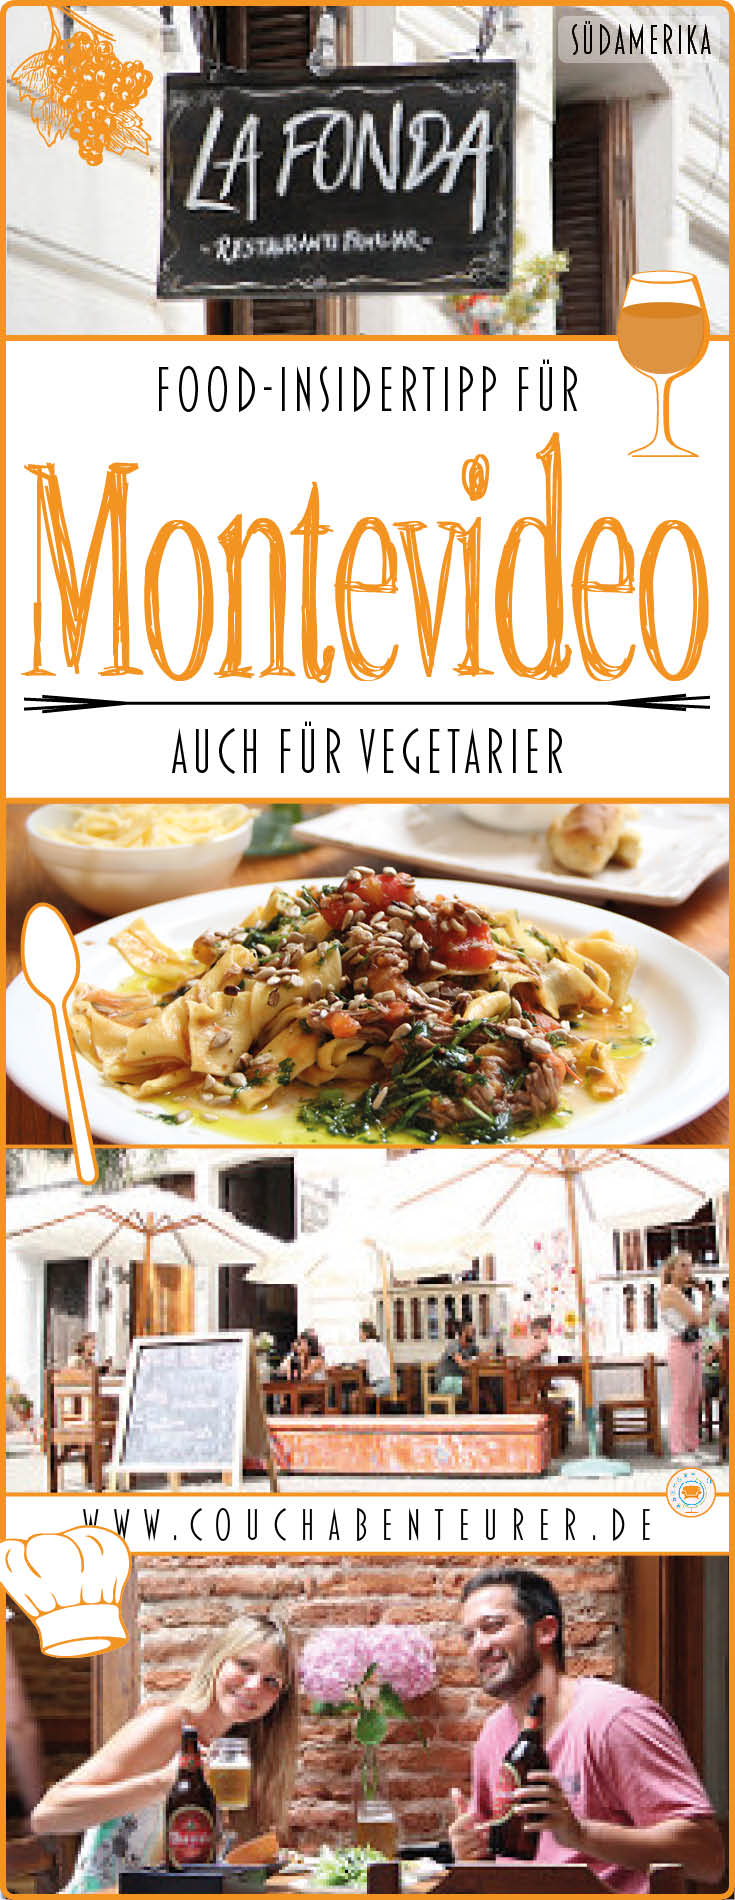 Food-Insidertipp-Montevideo-La-Fonda-Vegetarier